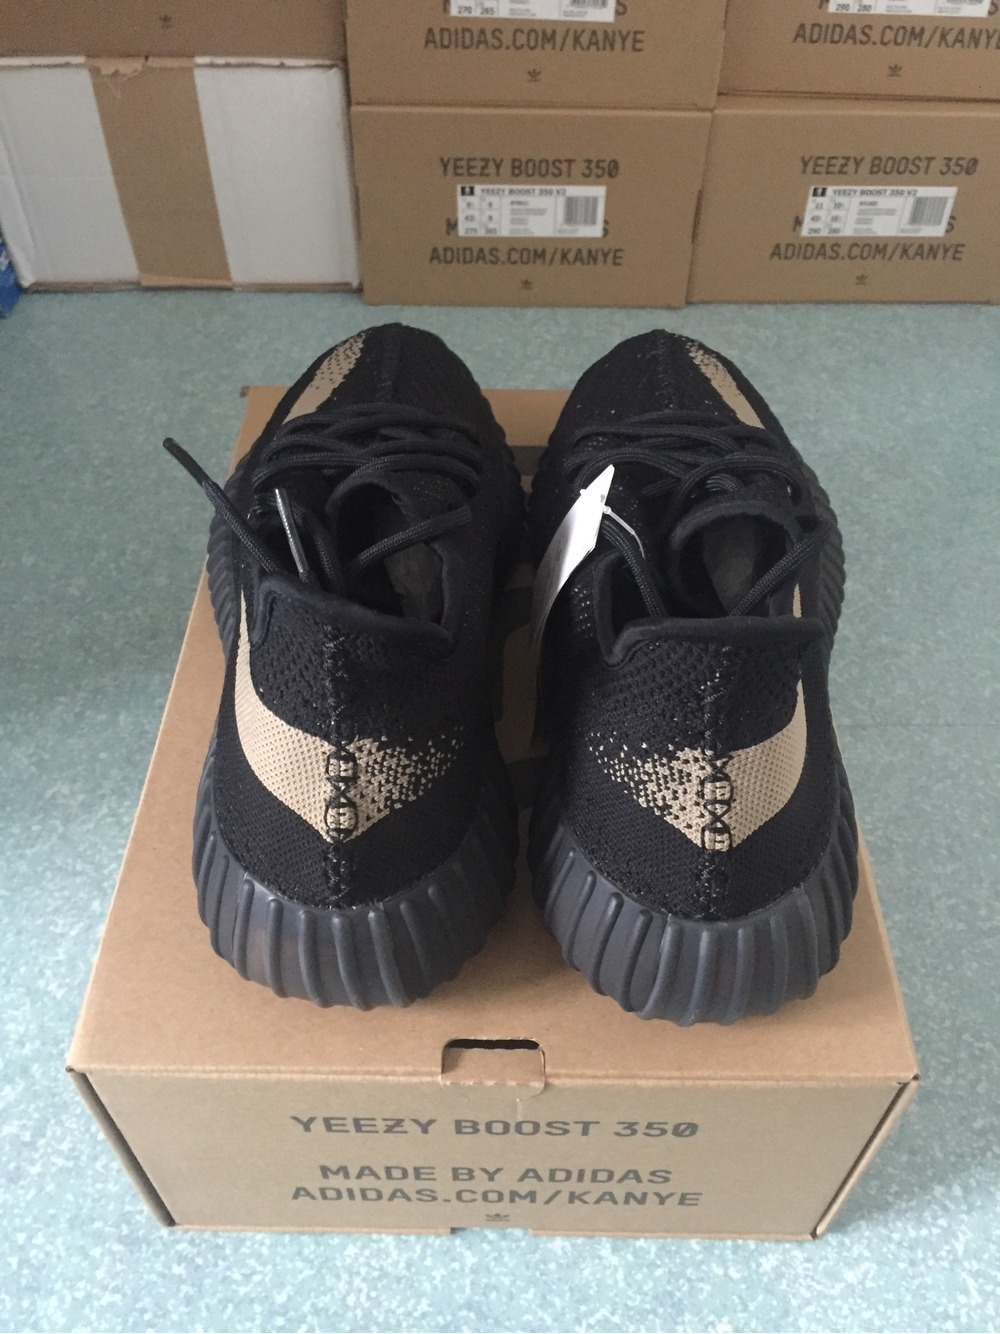 Best Yeezy Boost 350 V2 Green Black Hot Sale, New Red Air Yeezy